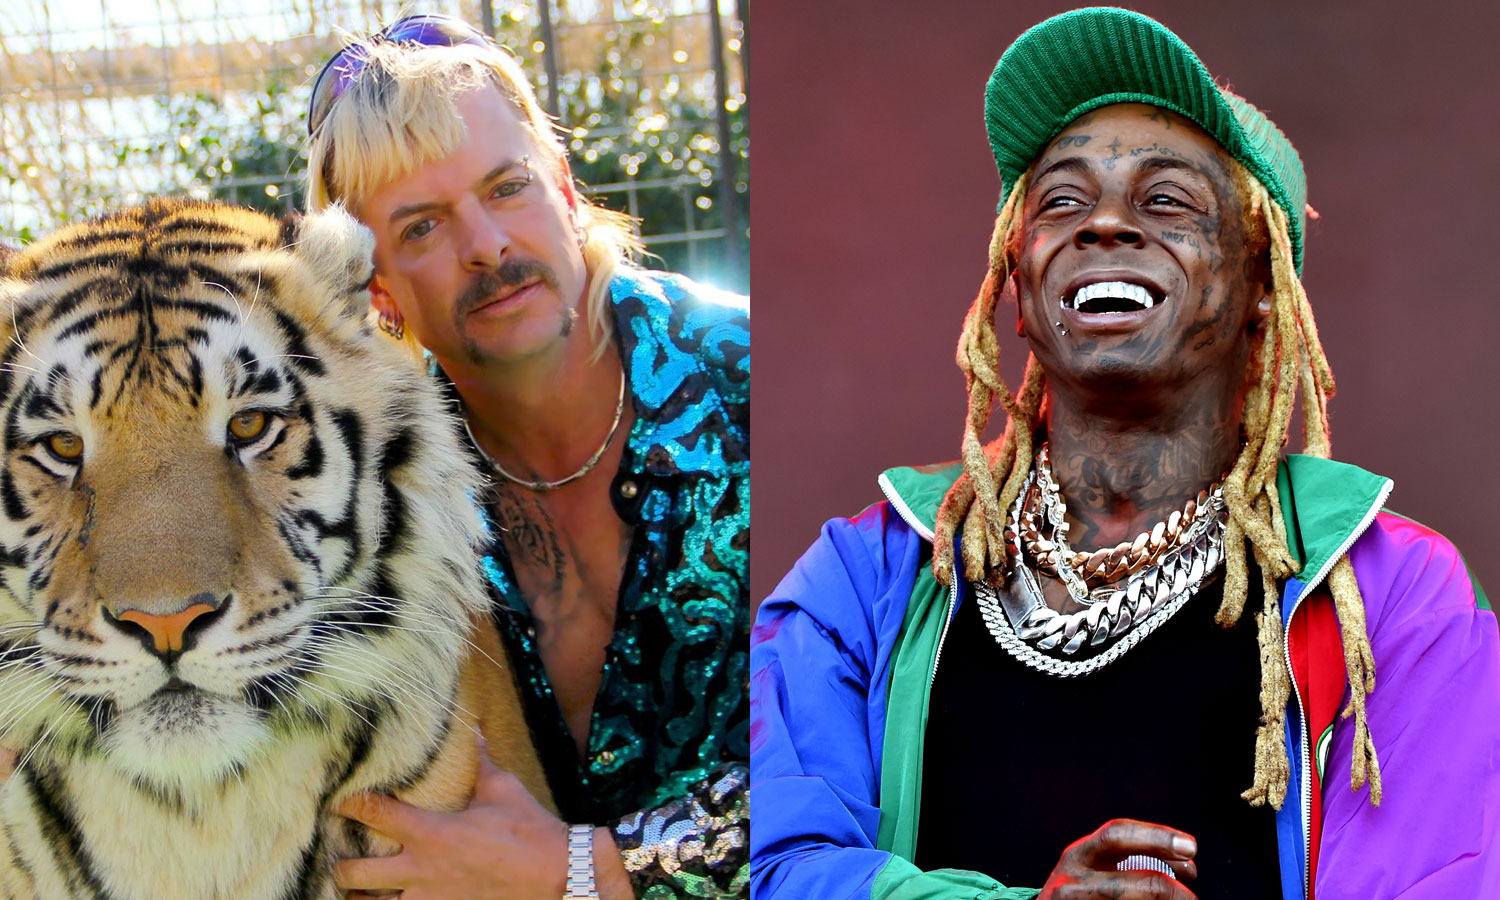 Joe Exotic fails to get Trump pardon while Lil Wayne and Kodak Black are granted clemency